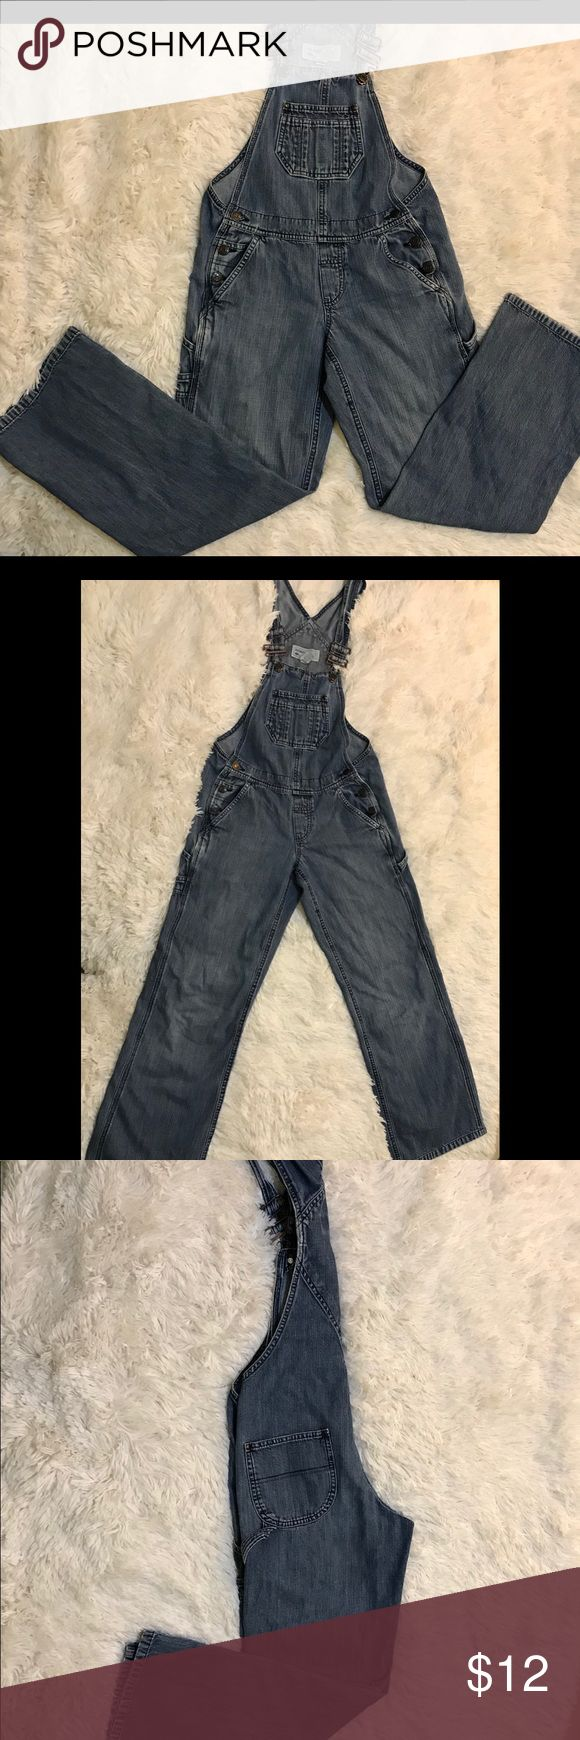 Old Navy Denim Overalls Old Navy Denim Overalls. Size XS. Used but still has lots of life left! Old Navy Pants Jumpsuits & Rompers